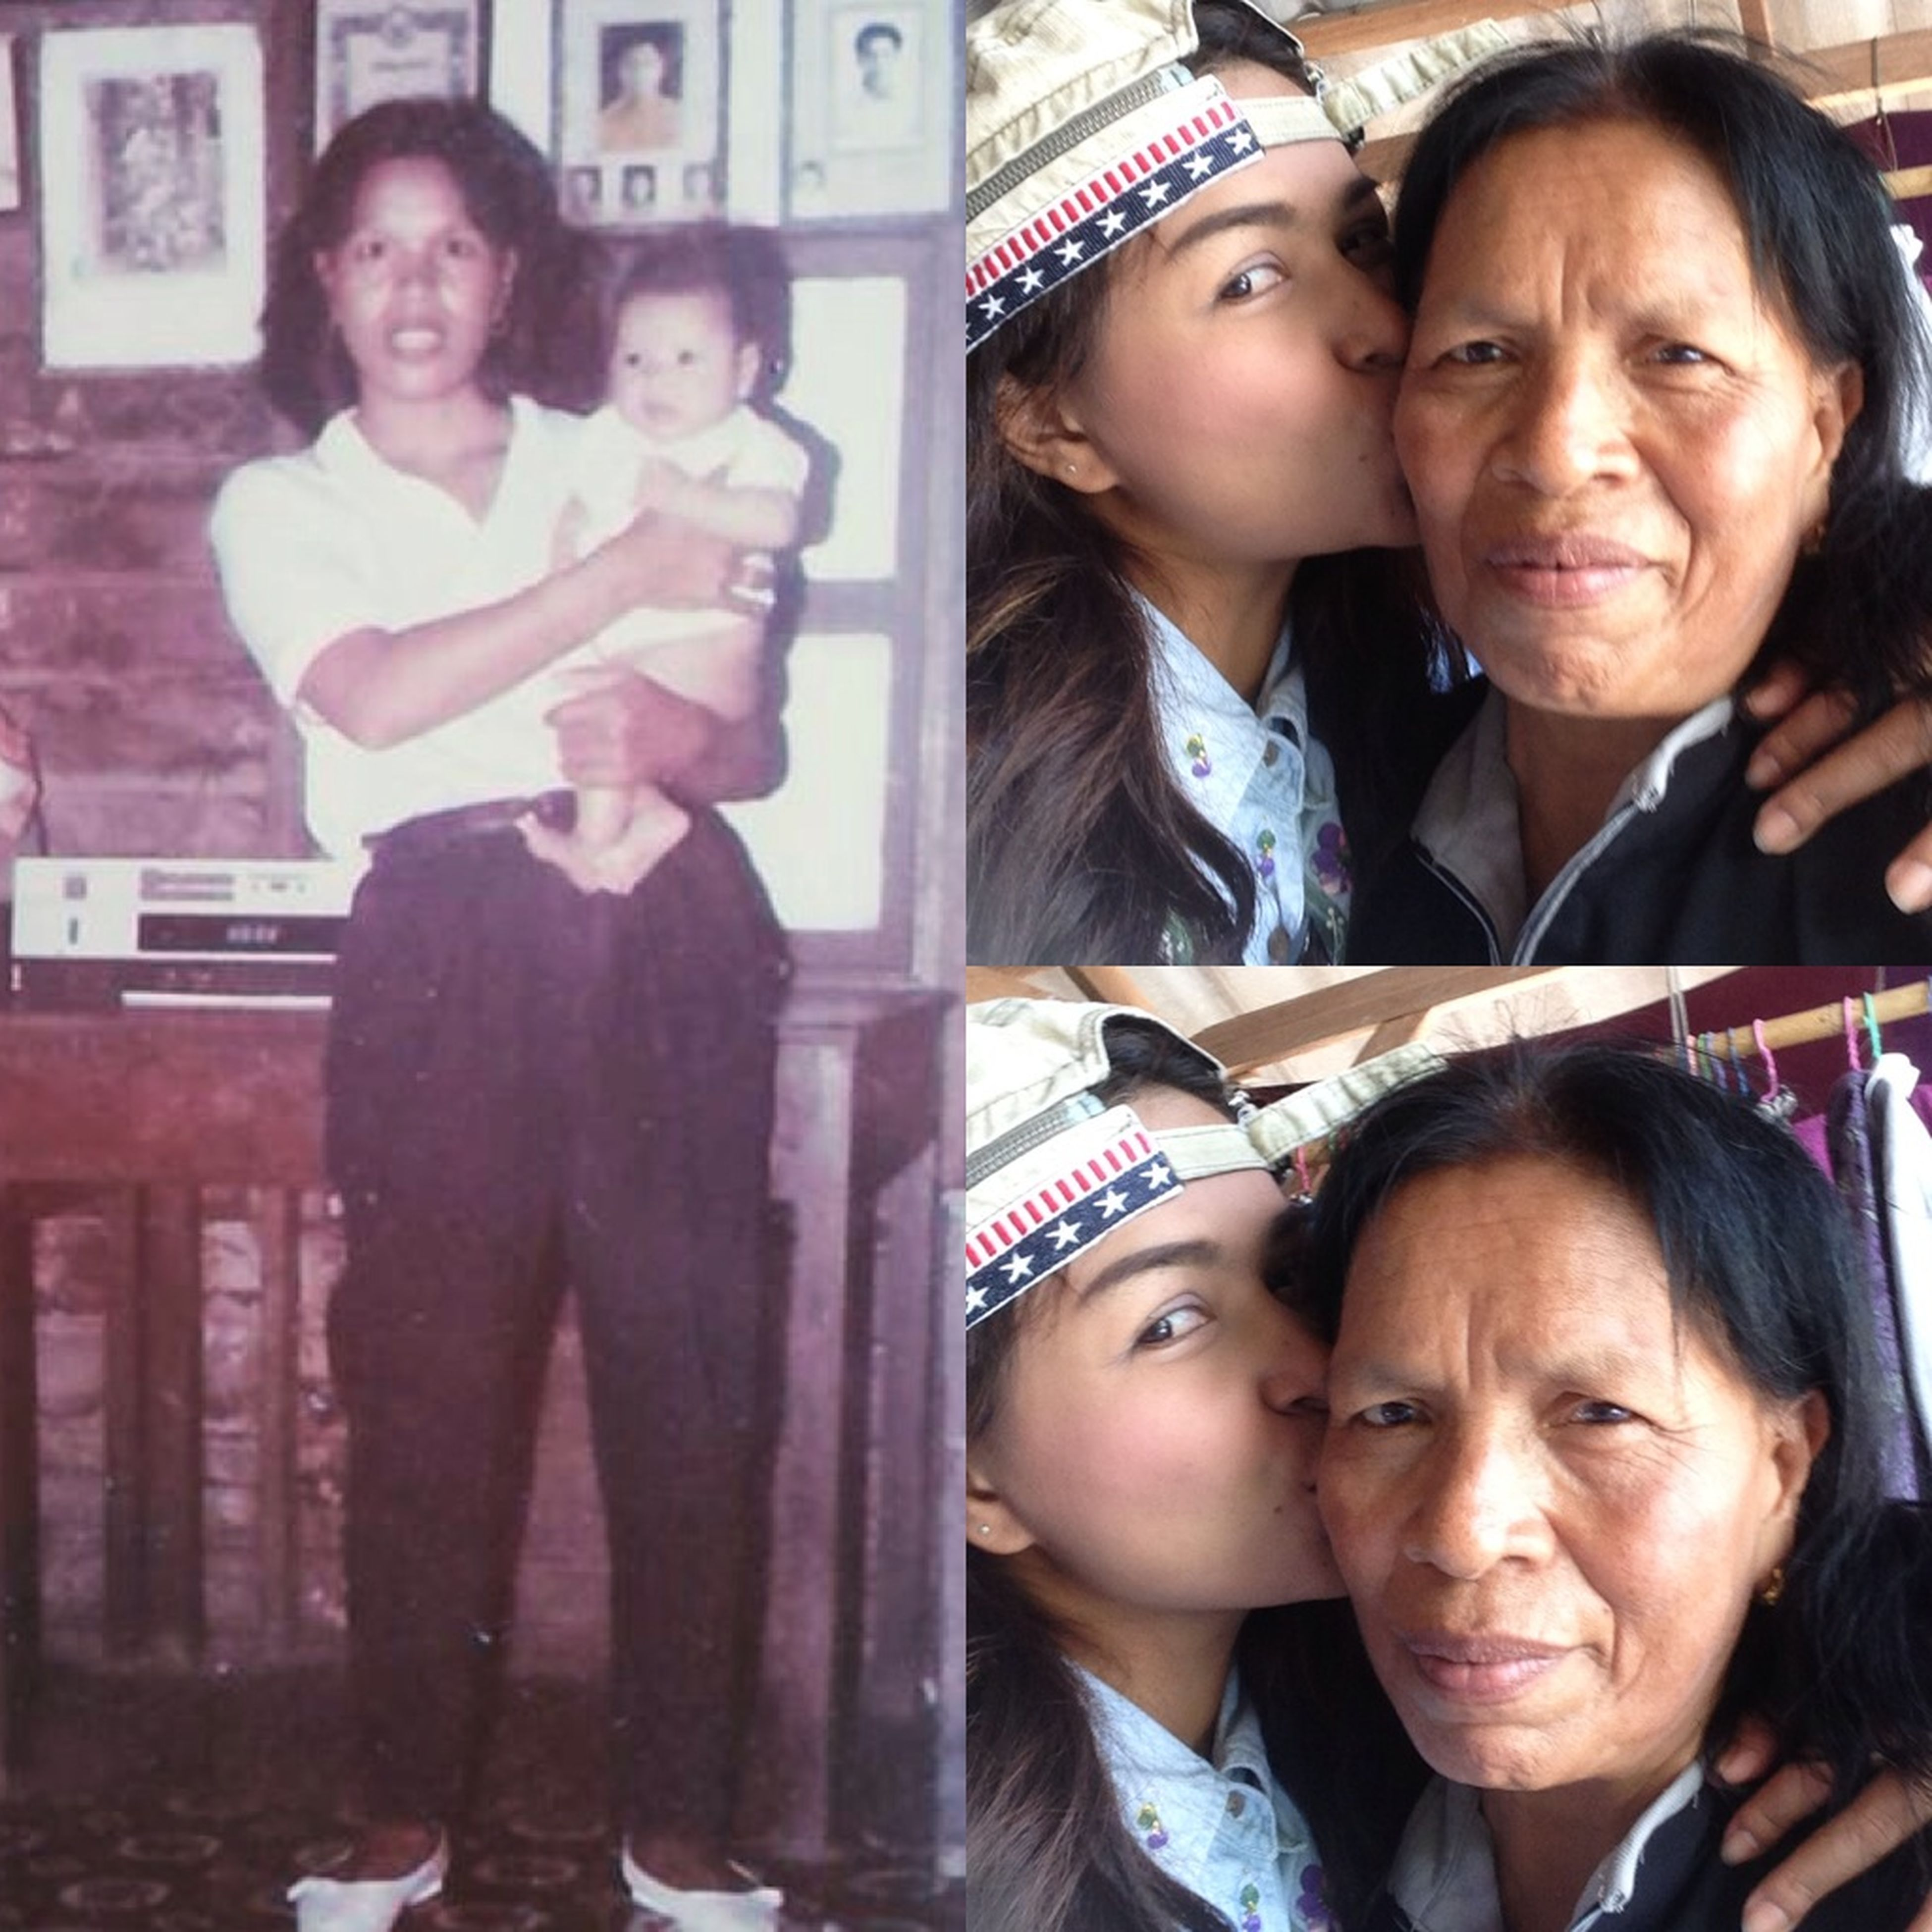 My mother, then aged just 4 months Don't put my mom from her arms. And now I'm 31 years old. I kissed her busy mom as well and as her (mother)I love you🙏